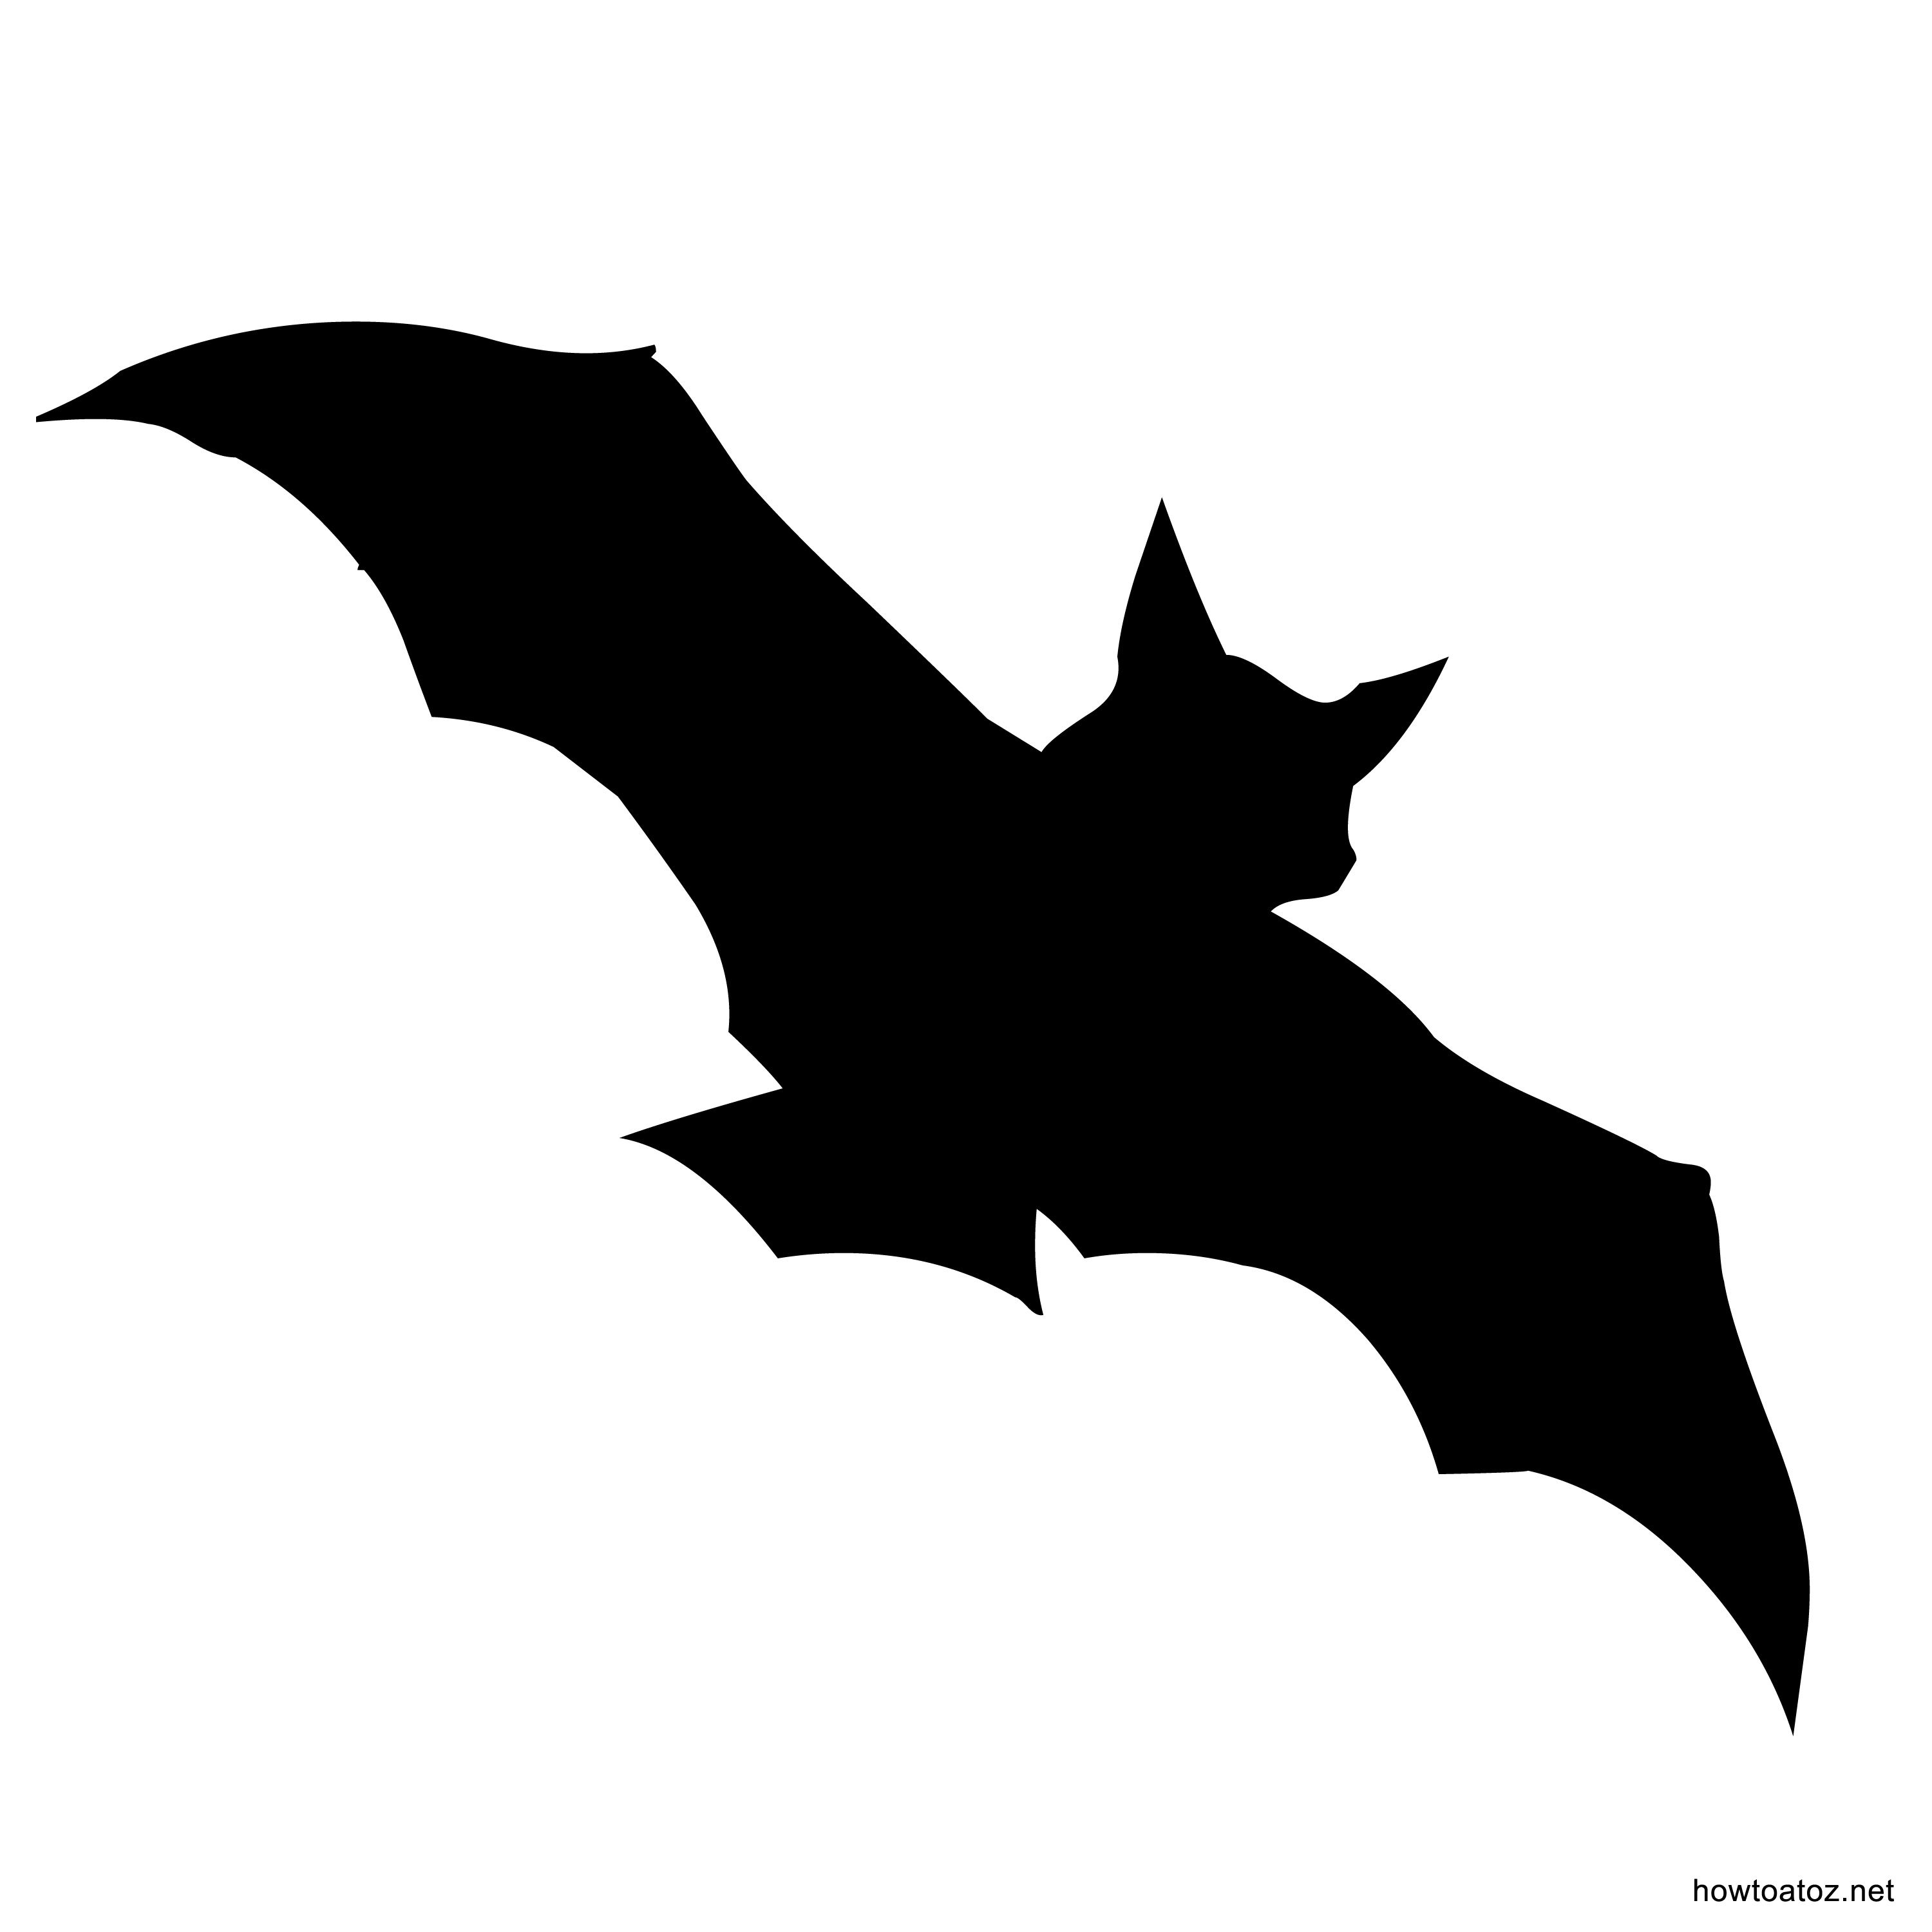 graphic about Printable Bat identified as Printable Bat Silhouette at  No cost for